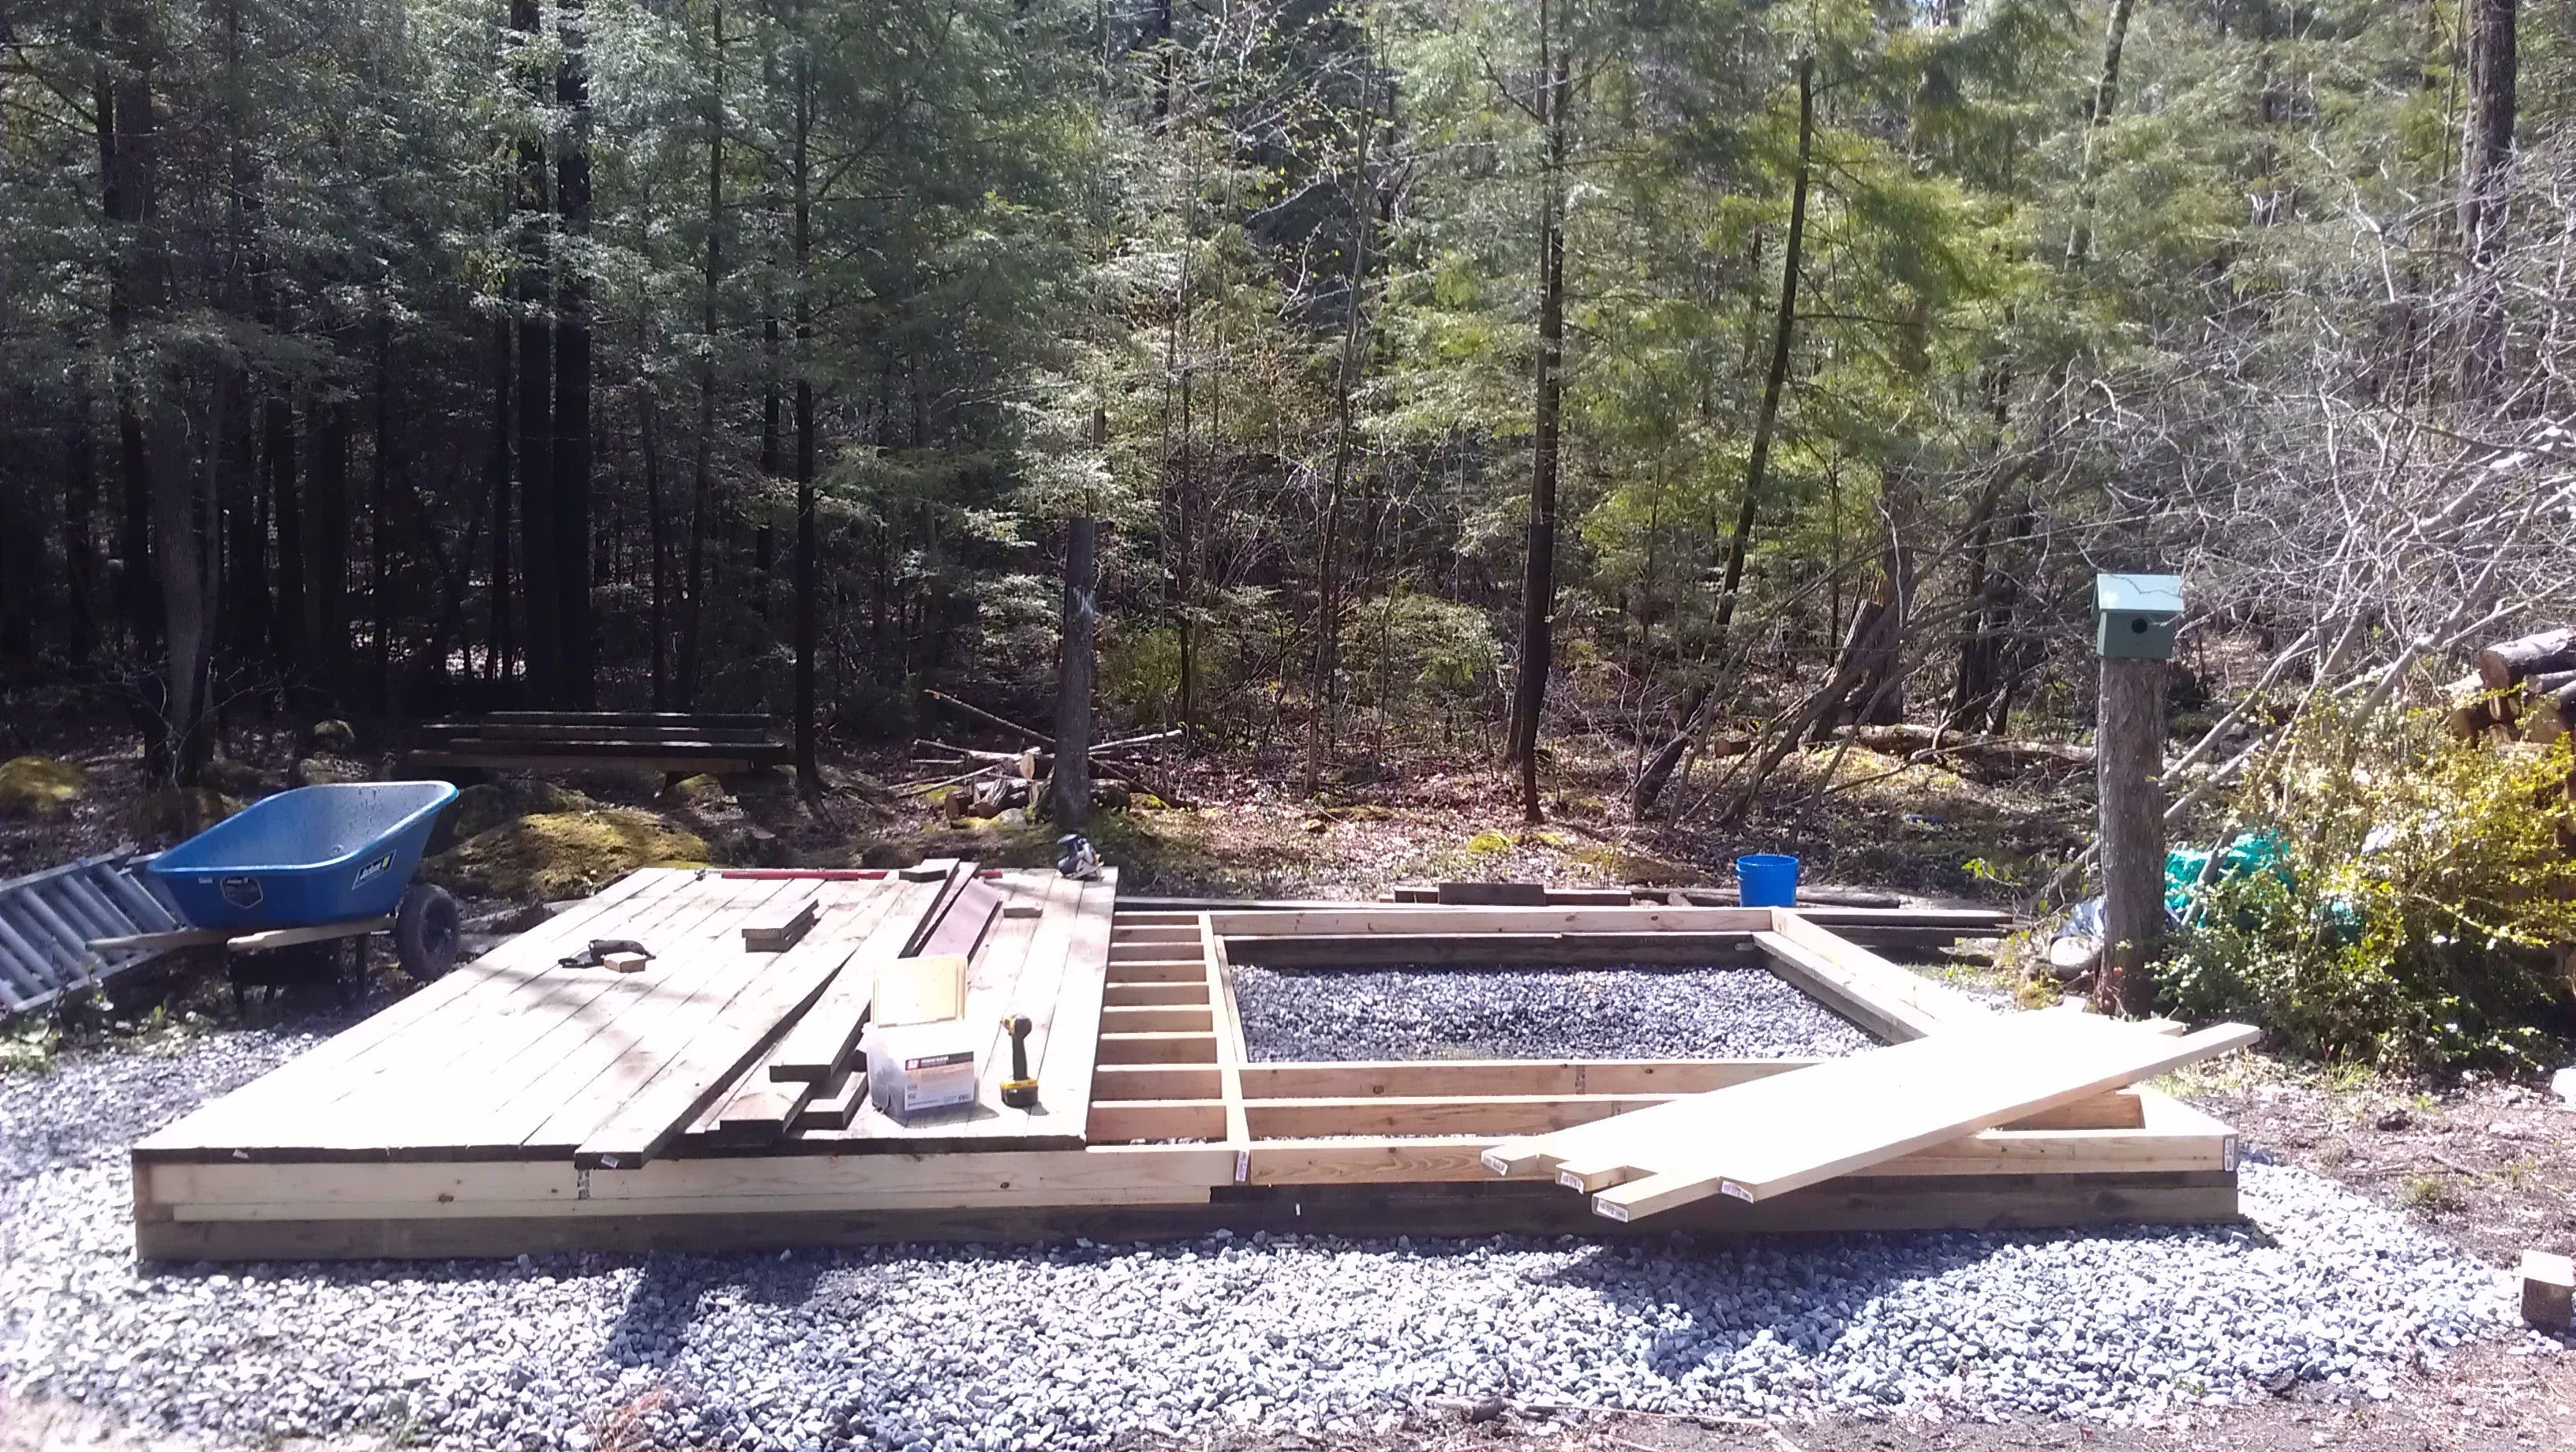 05/10/14 - Building a 16x12 tool/storage shed framing ...